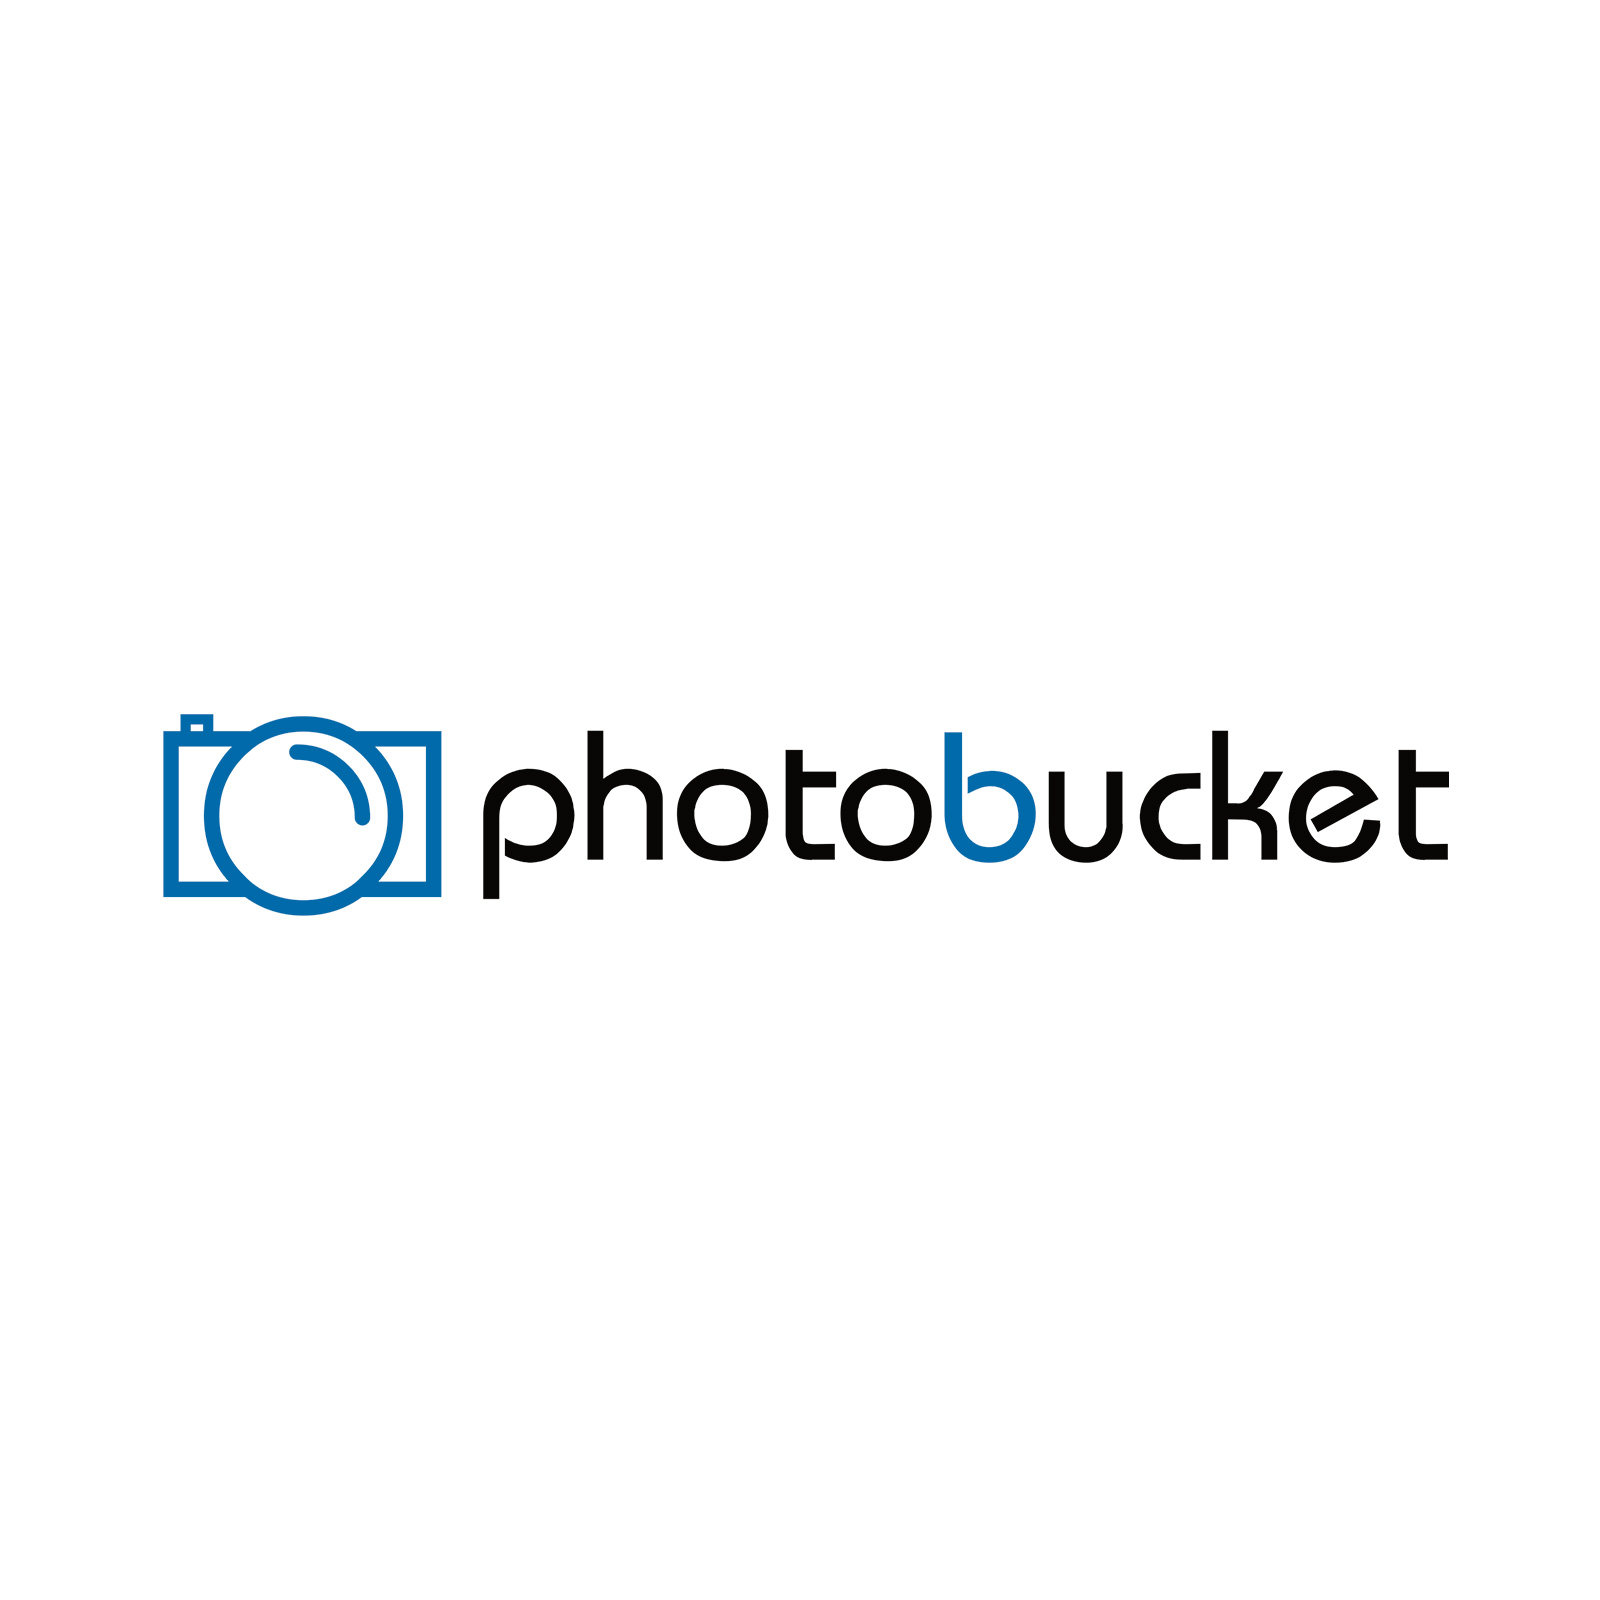 Photobucket is an American image hosting and video hosting website, web services suite, and online community.